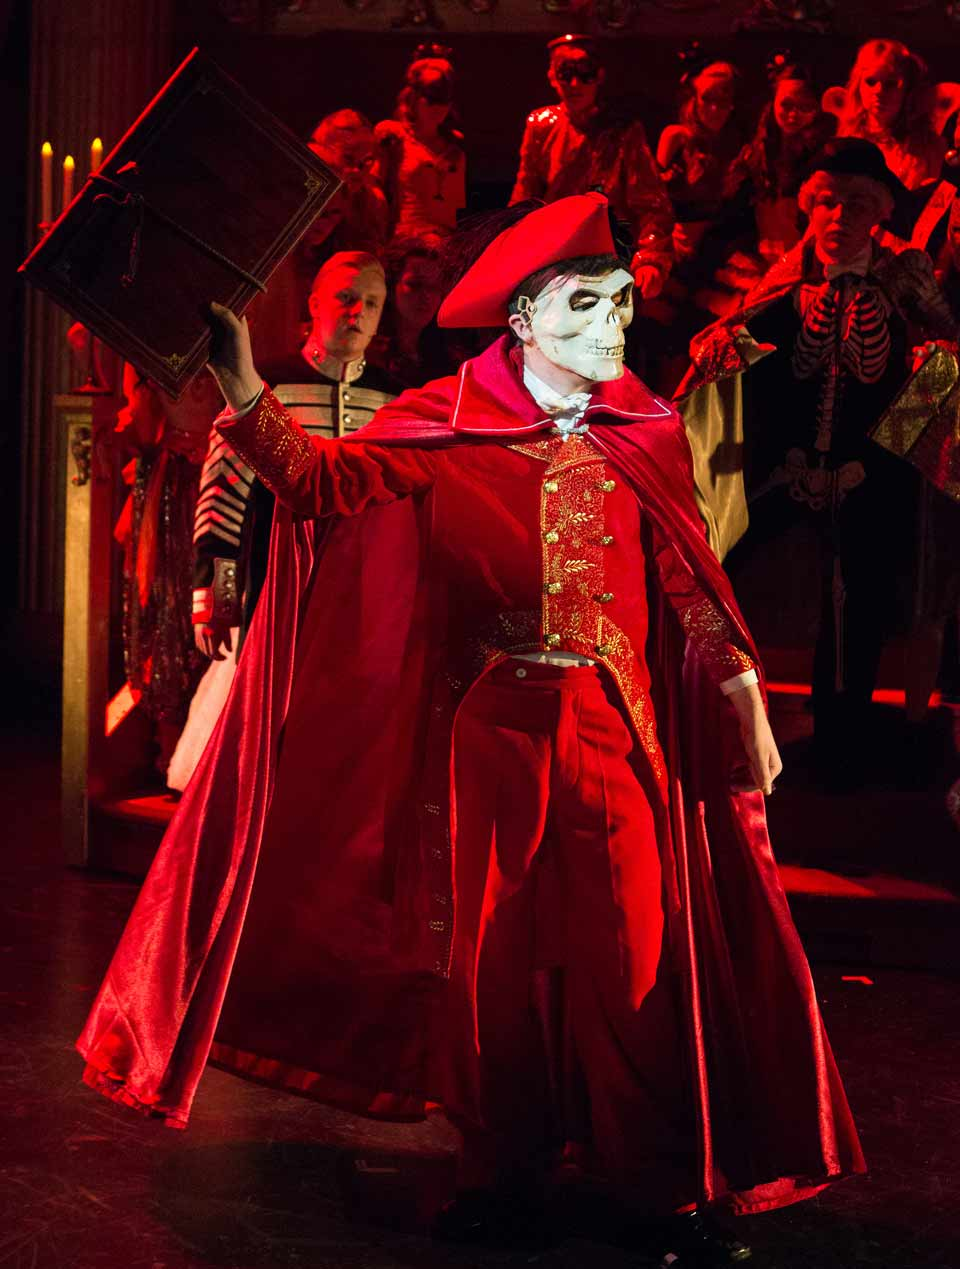 Red Death costume as worn by the Phantom in Phantom of the Opera.